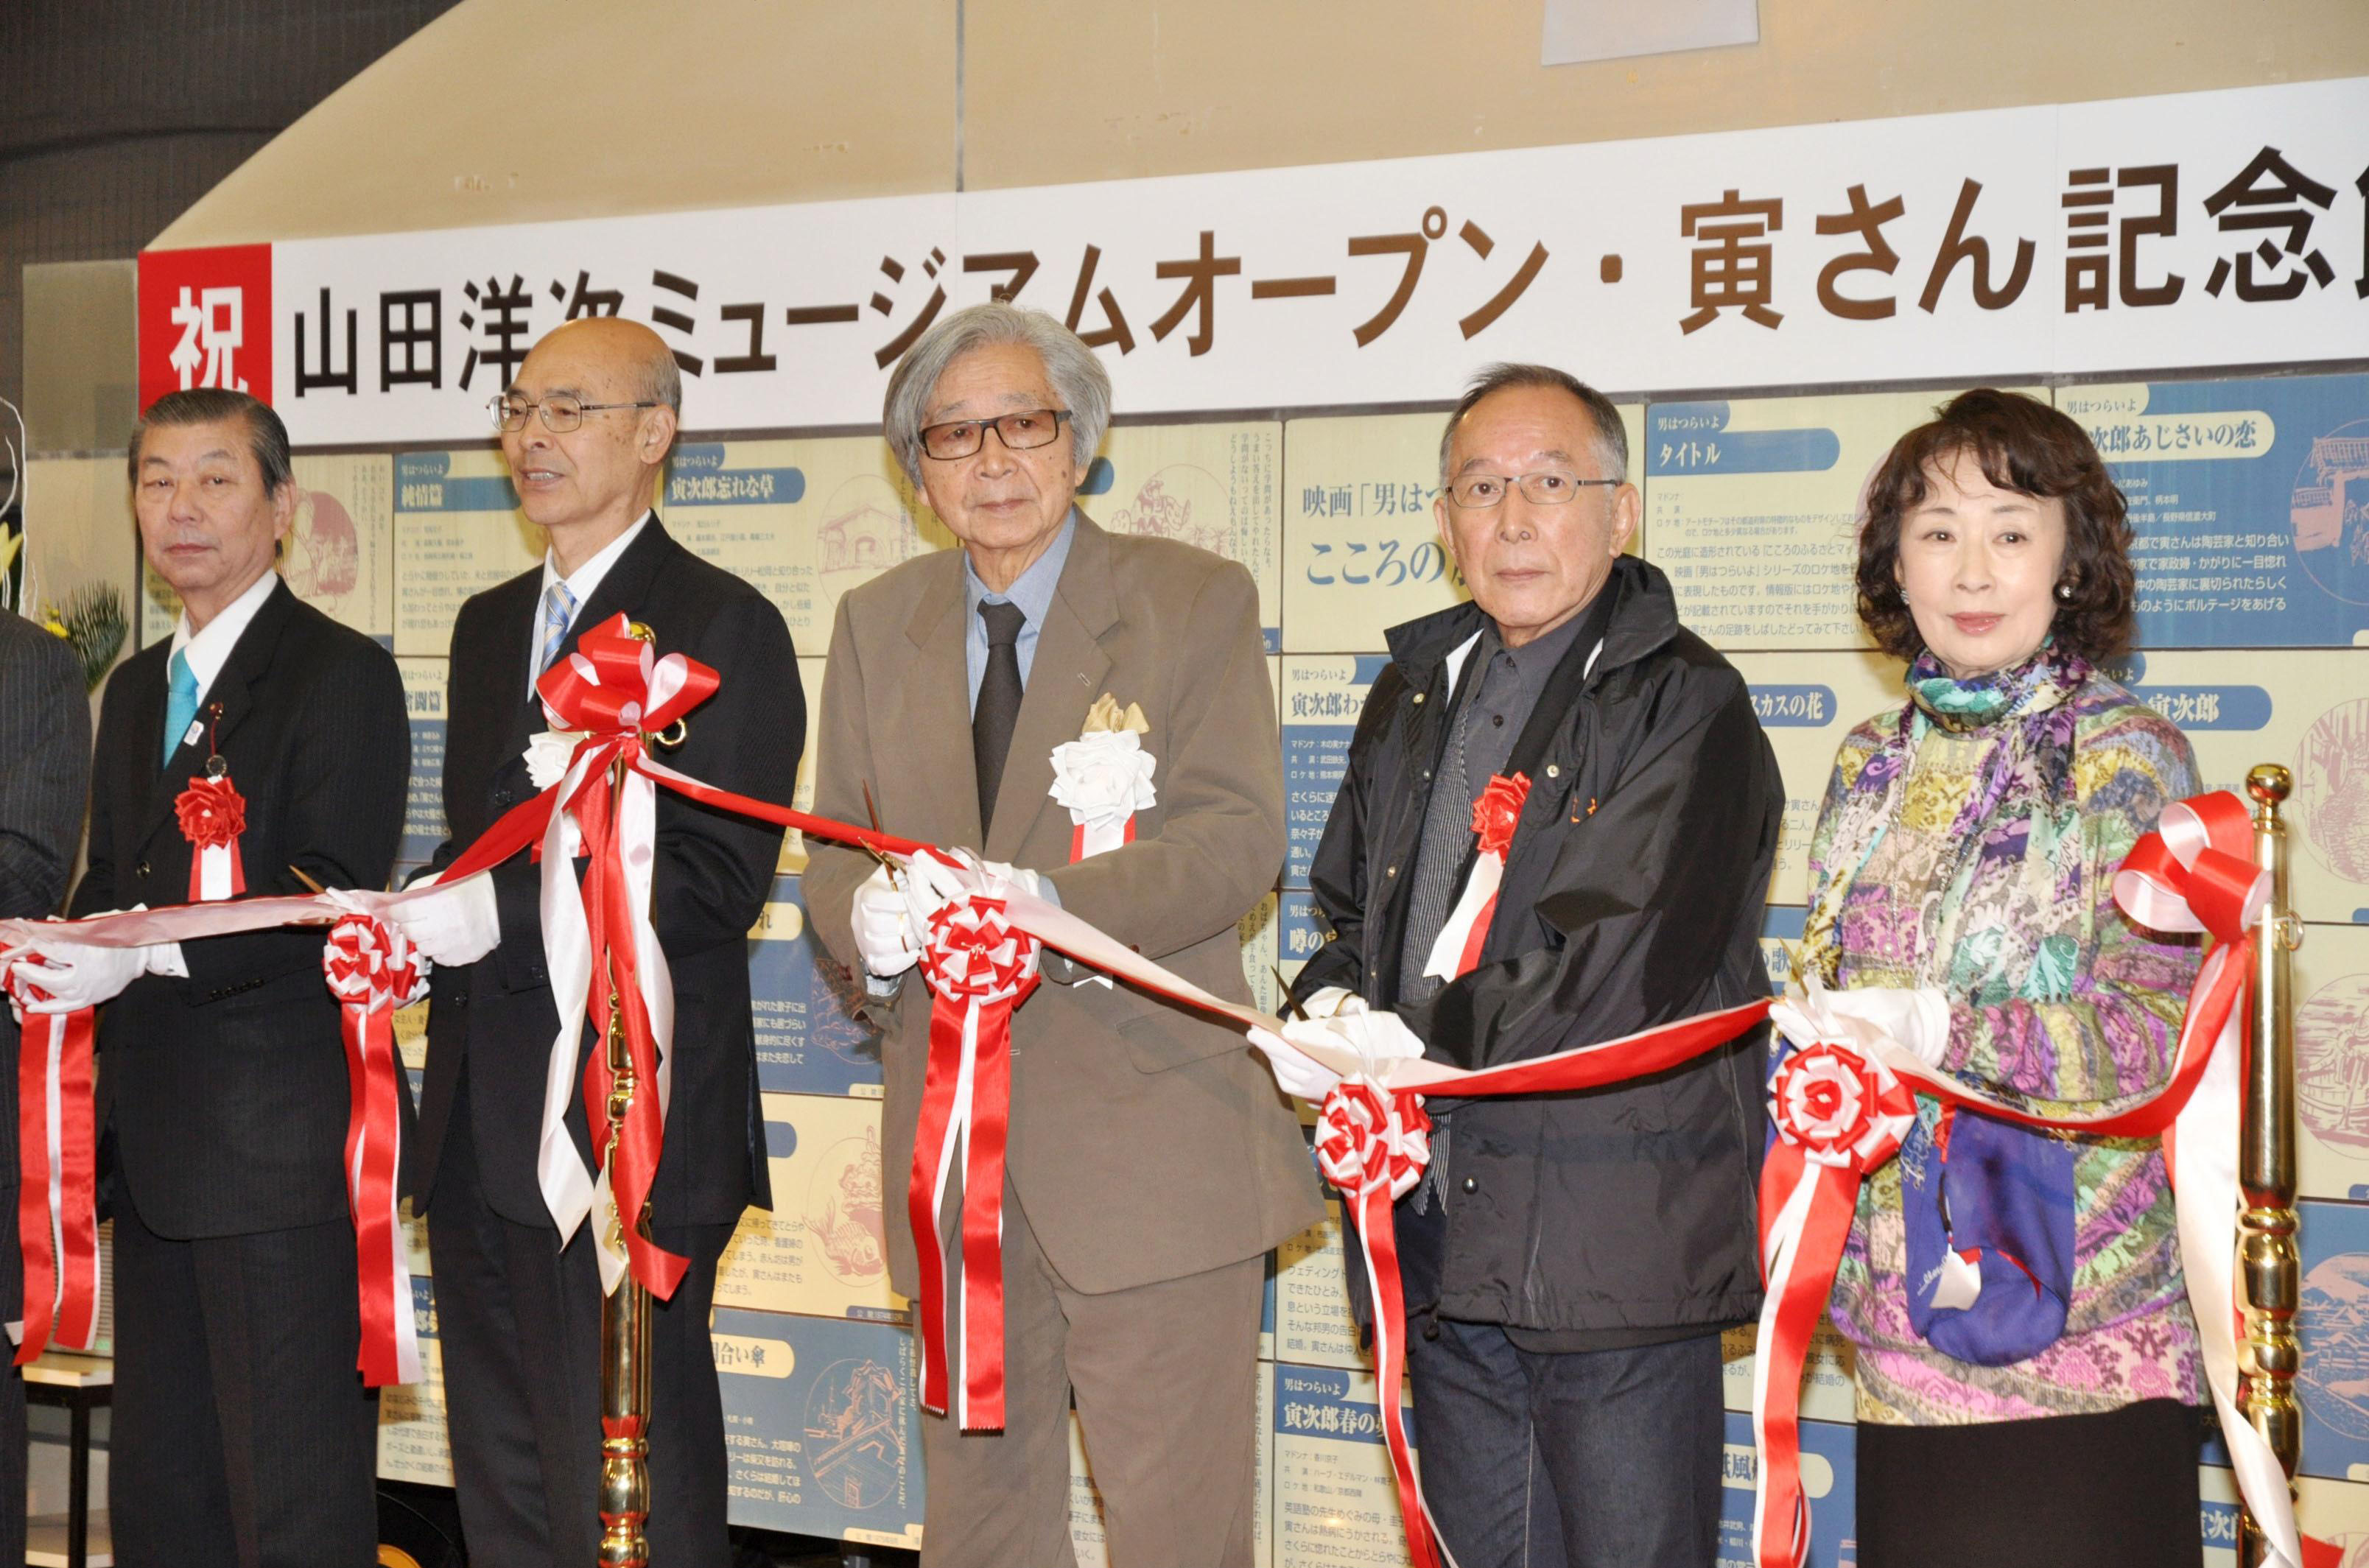 Making the cut: Lauded film director Yoji Yamada (center) takes part in a tape-cutting ceremony Saturday for a new museum dedicated to his works in Katsushika Ward, Tokyo. | KYODO